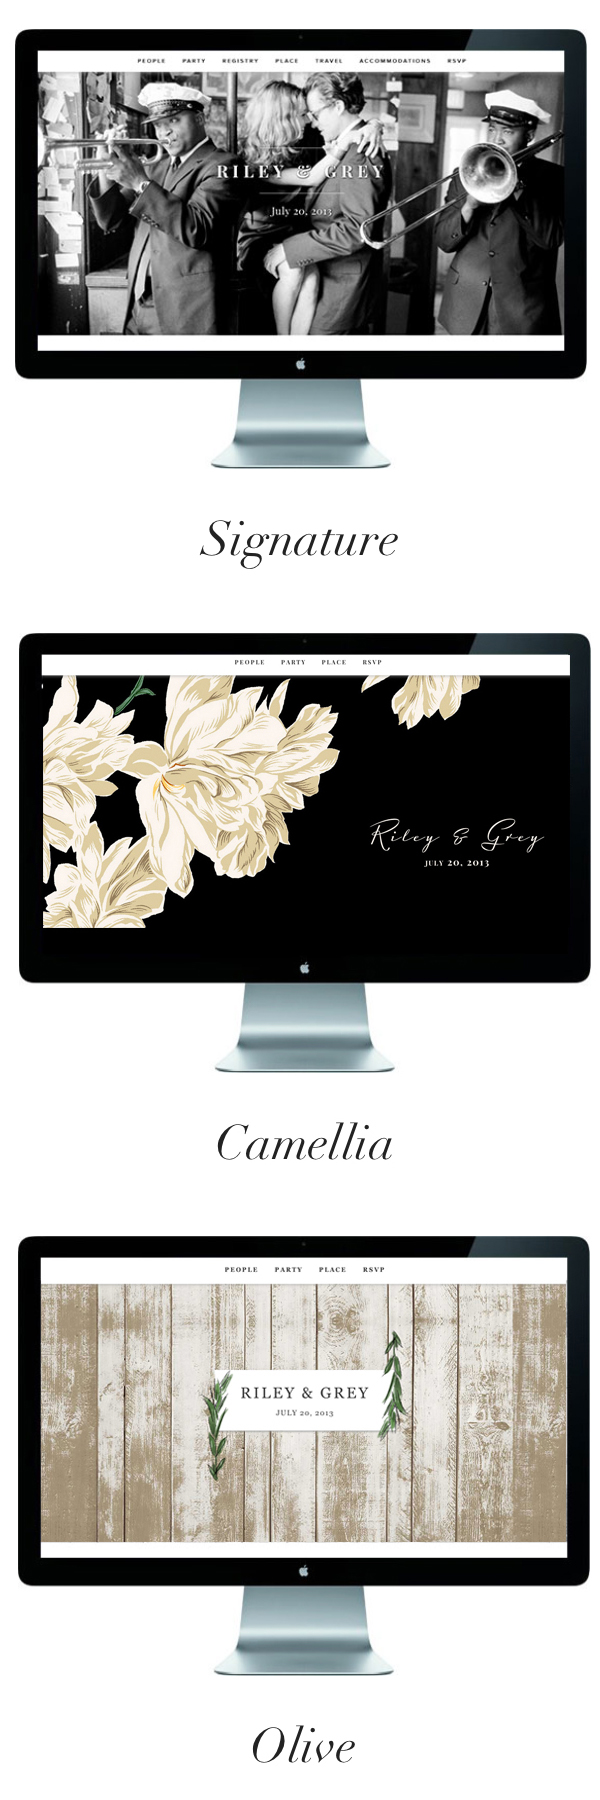 Favorite limited edition wedding websites